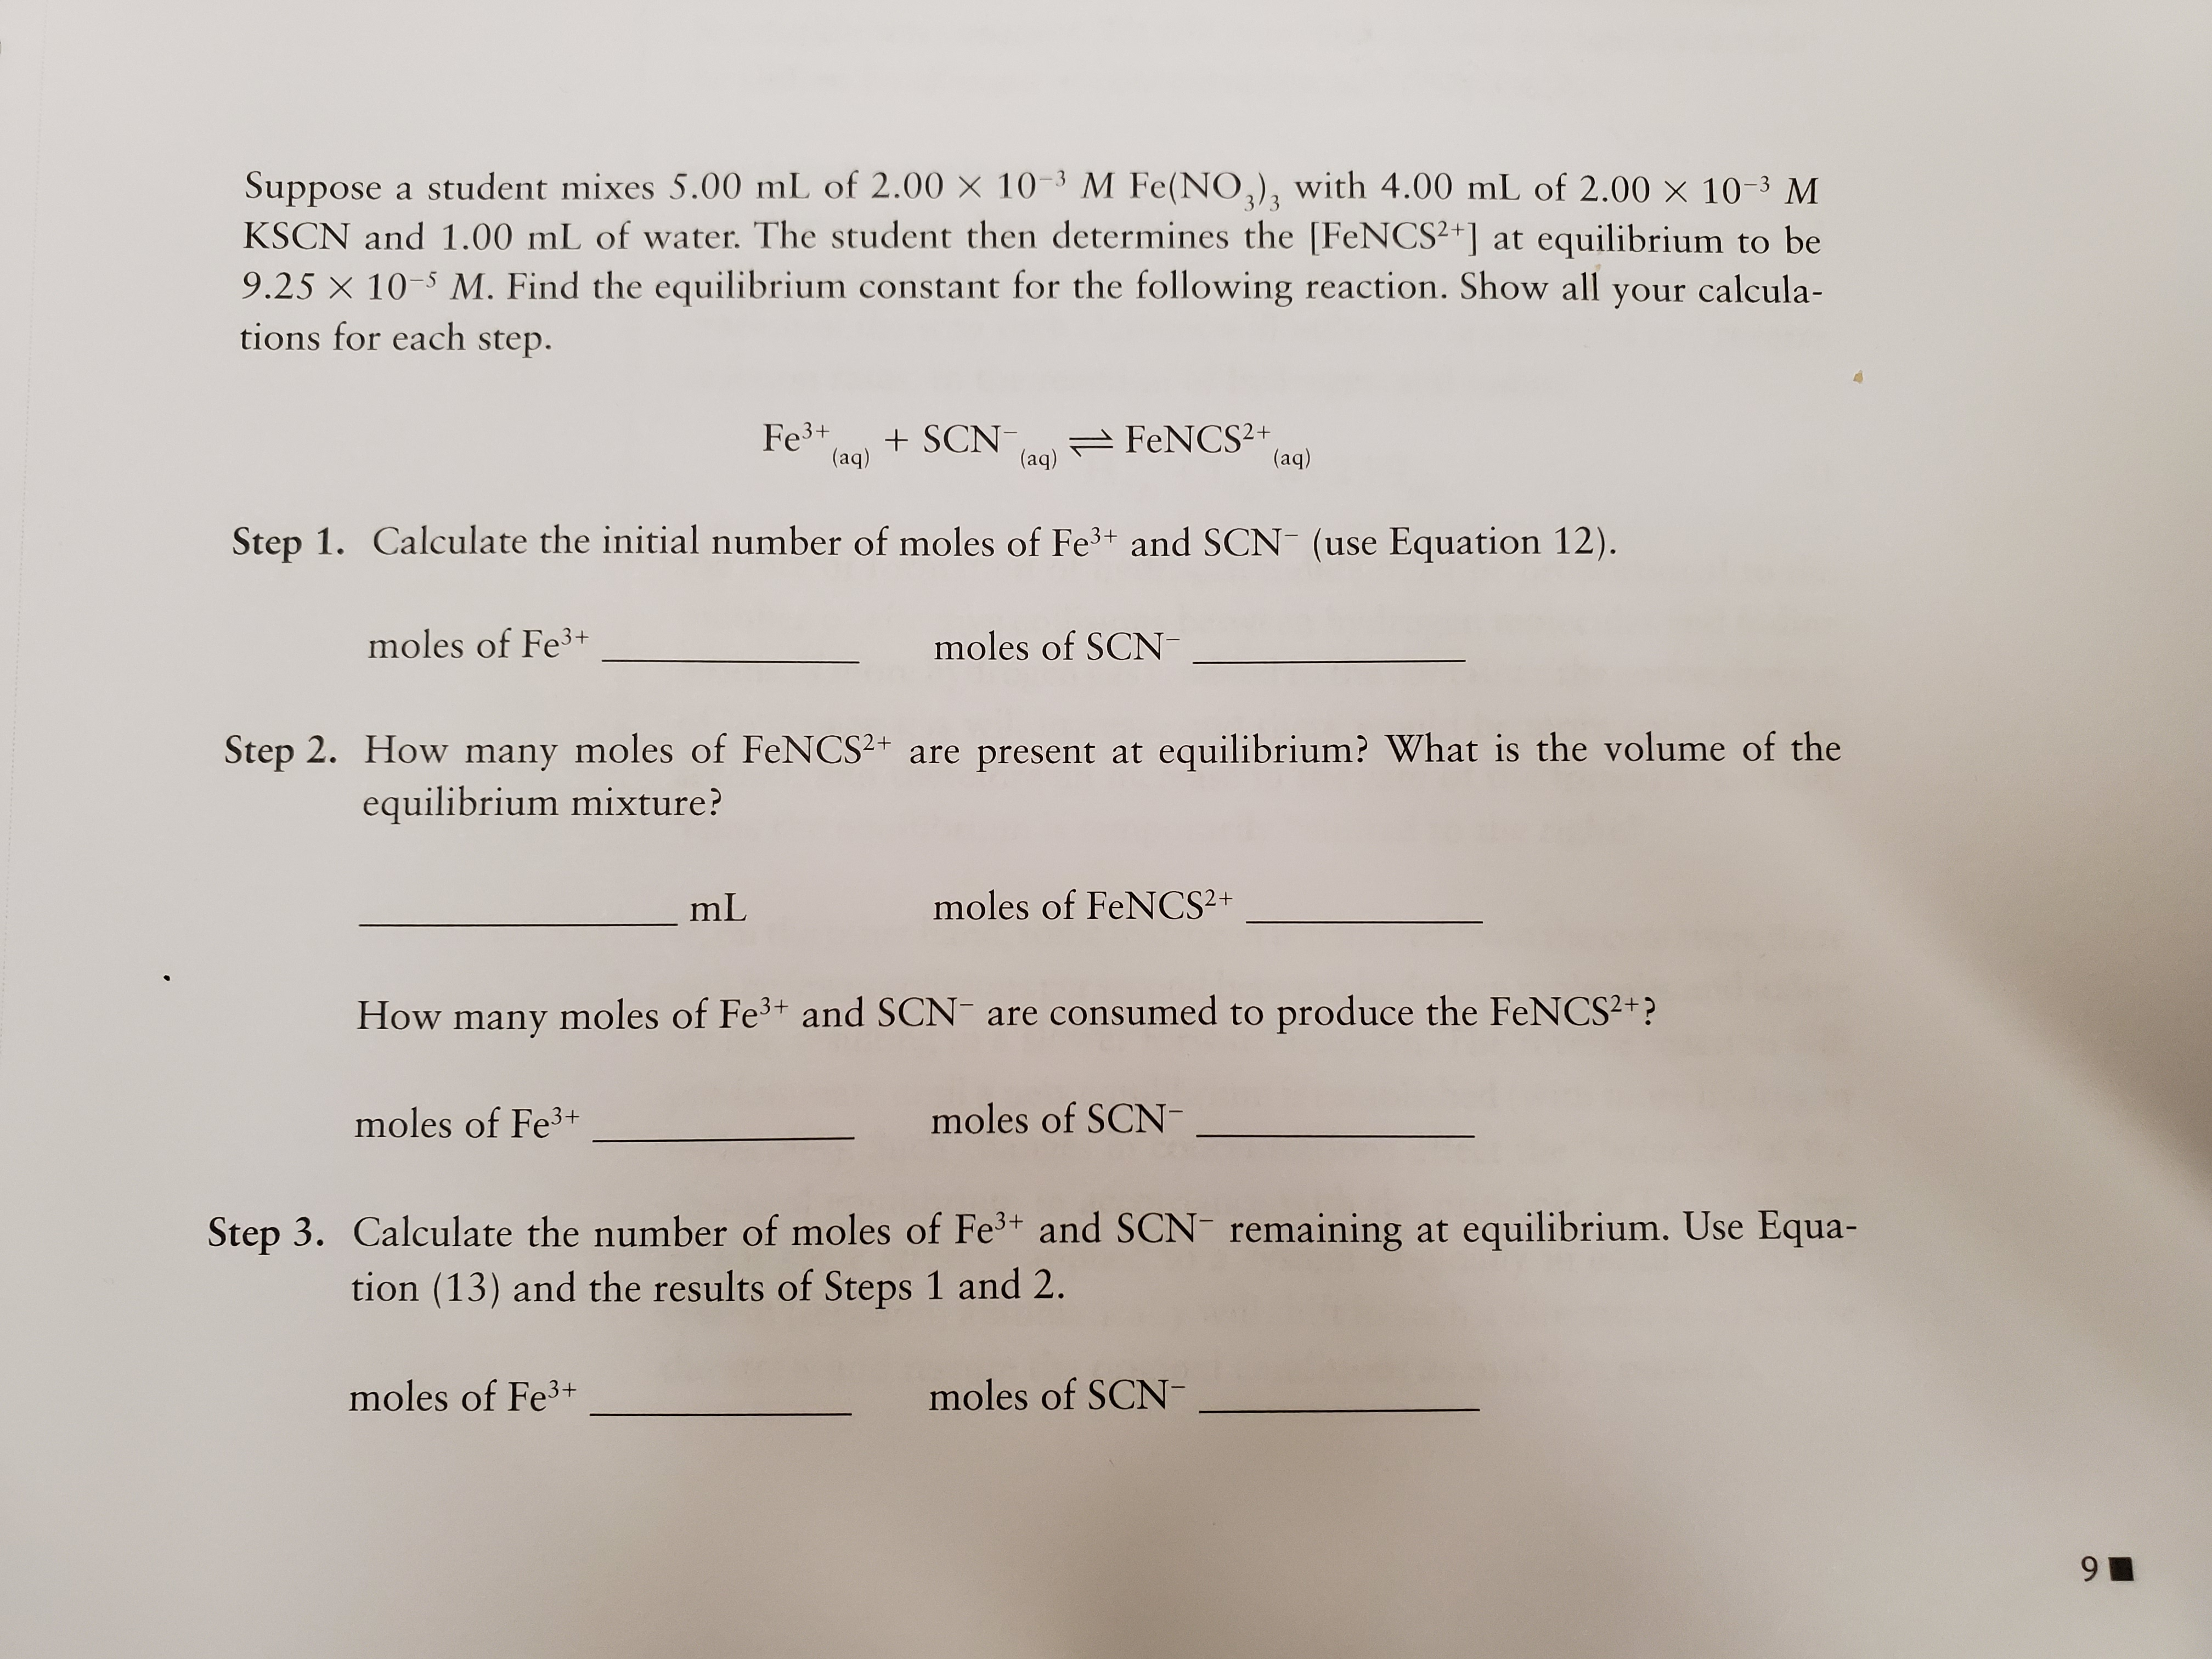 Suppose a student mixes 5.00 mL of 2.00 x 10-3 M Fe(NO,)3 with 4.00 mL of 2.00 x 10-3 M KSCN and 1.00 mL of water. The student then determines the [FeNCS2+] at equilibrium to be 9.25 X 10 M. Find the equilibrium constant for the following reaction. Show all your calcula- tions for each step. 3/3 Fe3+ (aq) SCN (aq FeNCS2+ (aq) Step 1. Calculate the initial number of moles of Fe3+ and SCN (use Equation 12). moles of Fe3+ moles of SCN Step 2. How many moles of FeNCS2+ are present at equilibrium? What is the volume of the equilibrium mixture? mL moles of FeNCS2+ How many moles of Fe3 and SCN are consumed to produce the FeNCS2+? moles of Fe3+ moles of SCN Step 3. Calculate the number of moles of Fe3+ and SCN- remaining at equilibrium. Use Equa- tion (13) and the results of Steps 1 and 2. moles of Fe3+ moles of SCN 9